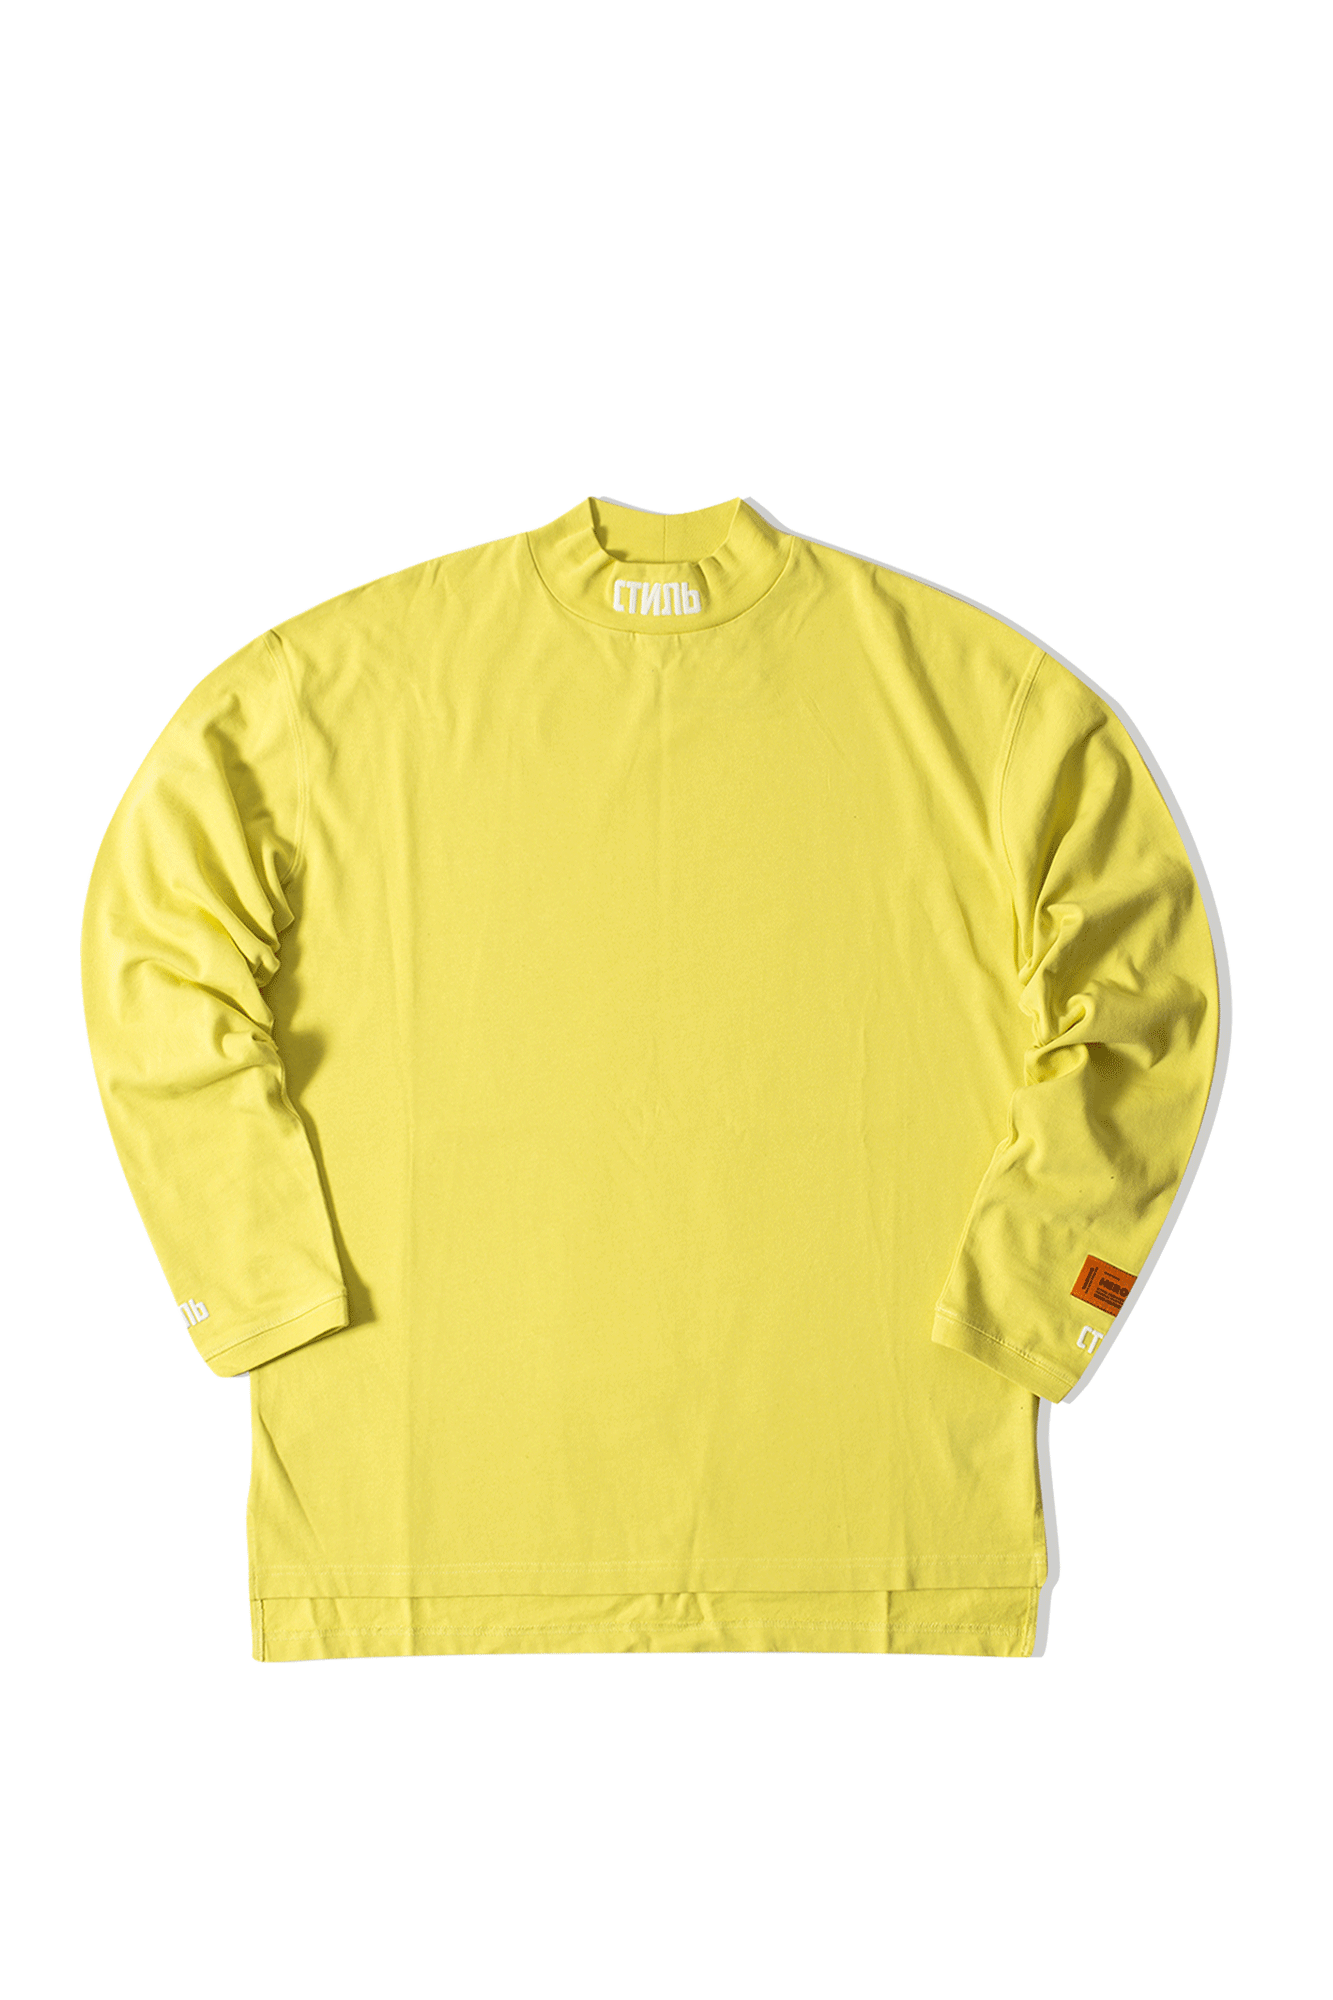 Turtleneck CTNMB Yellow